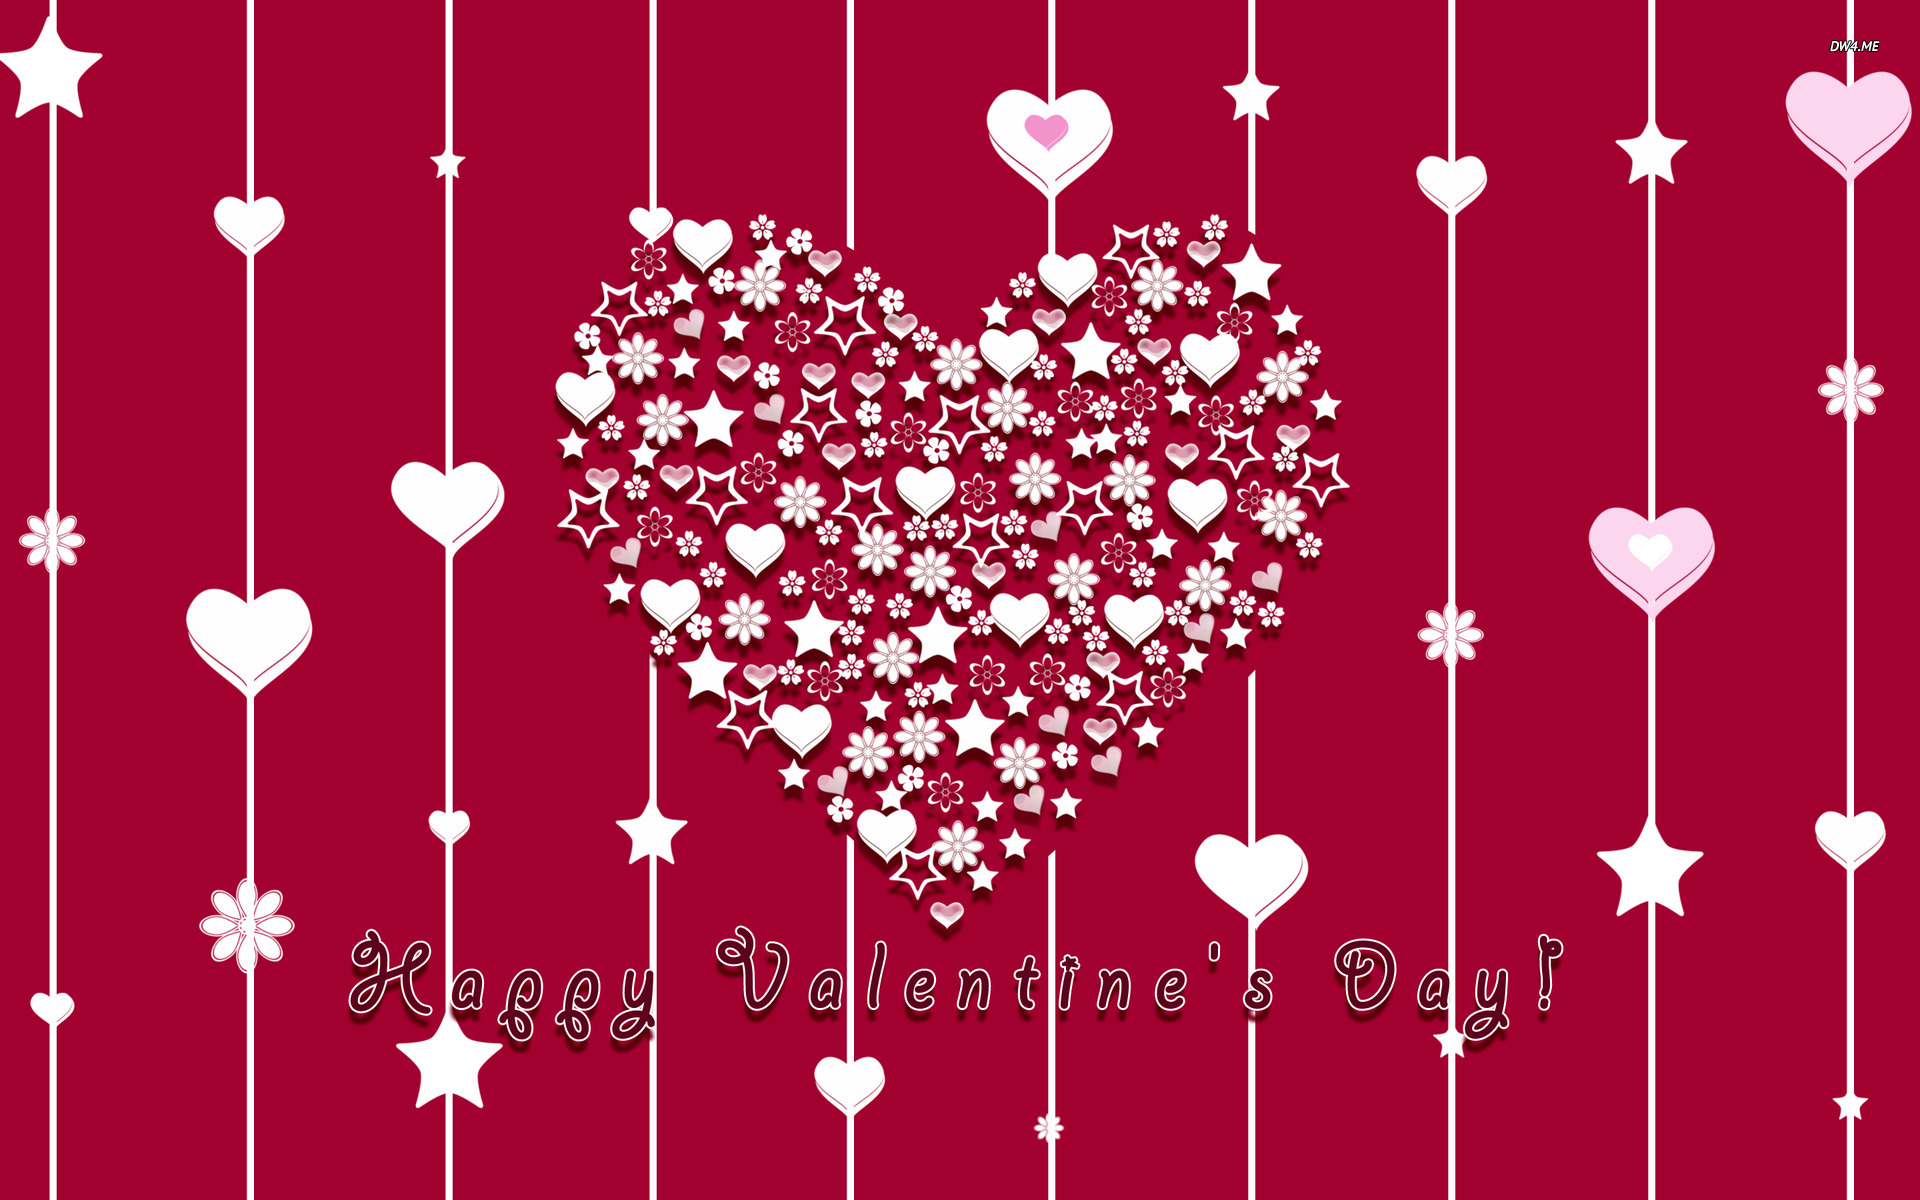 happy valentines day wallpaper hd wallpaper valentines